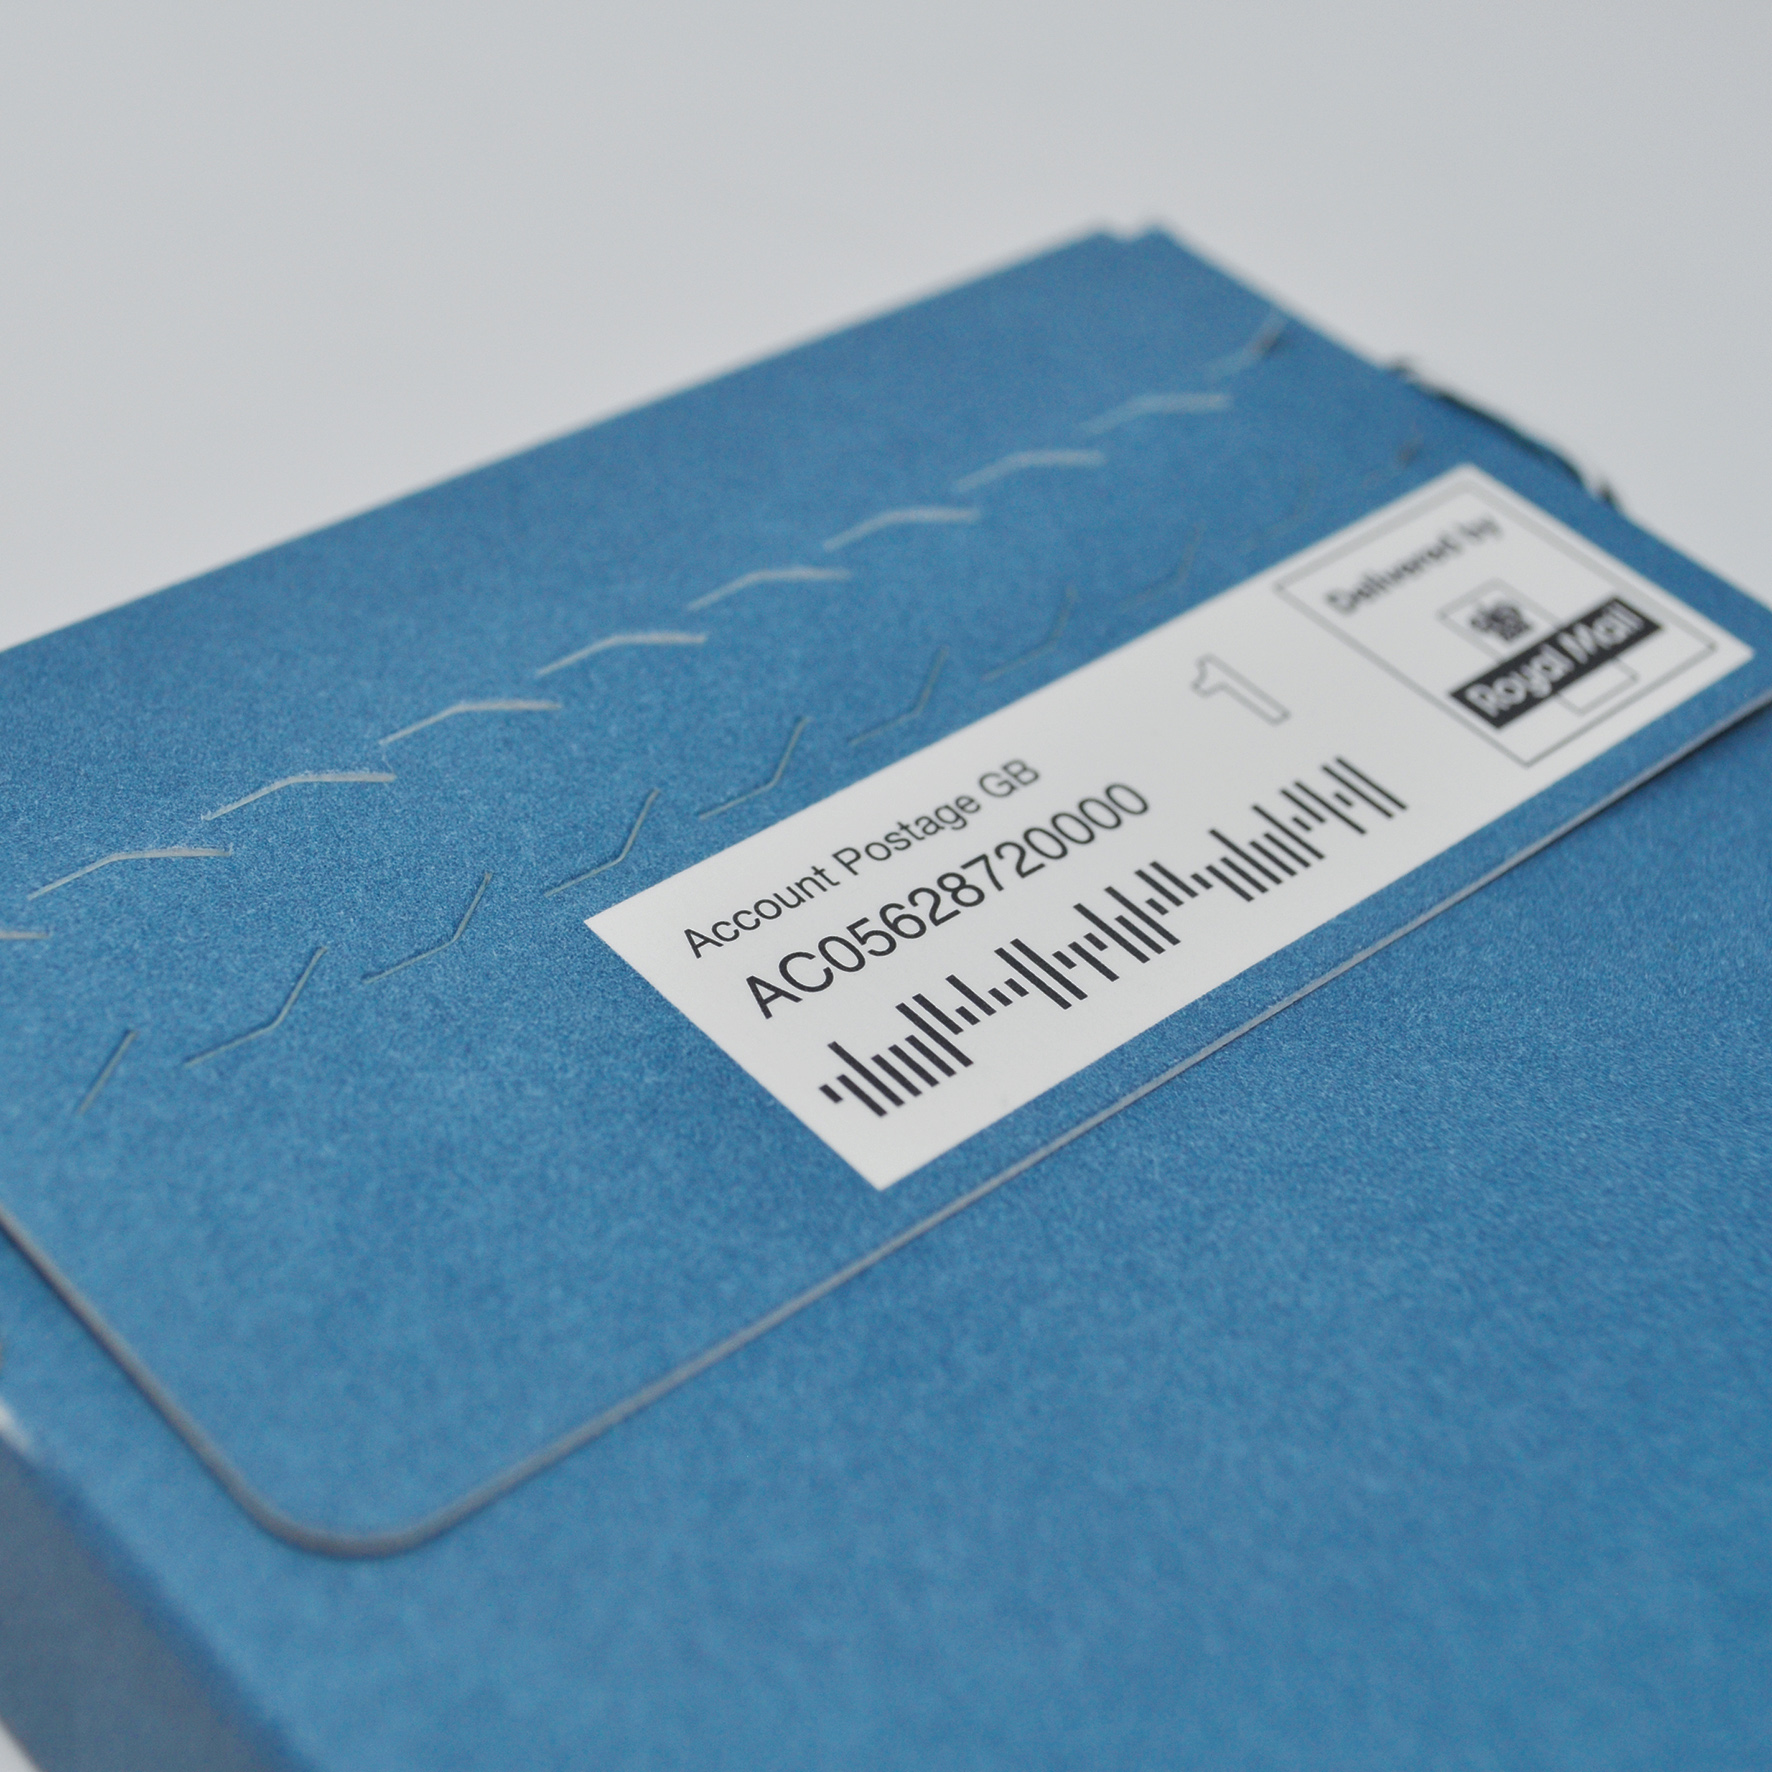 Printed Mailing Box - Seal and Reveal Perforated Strip